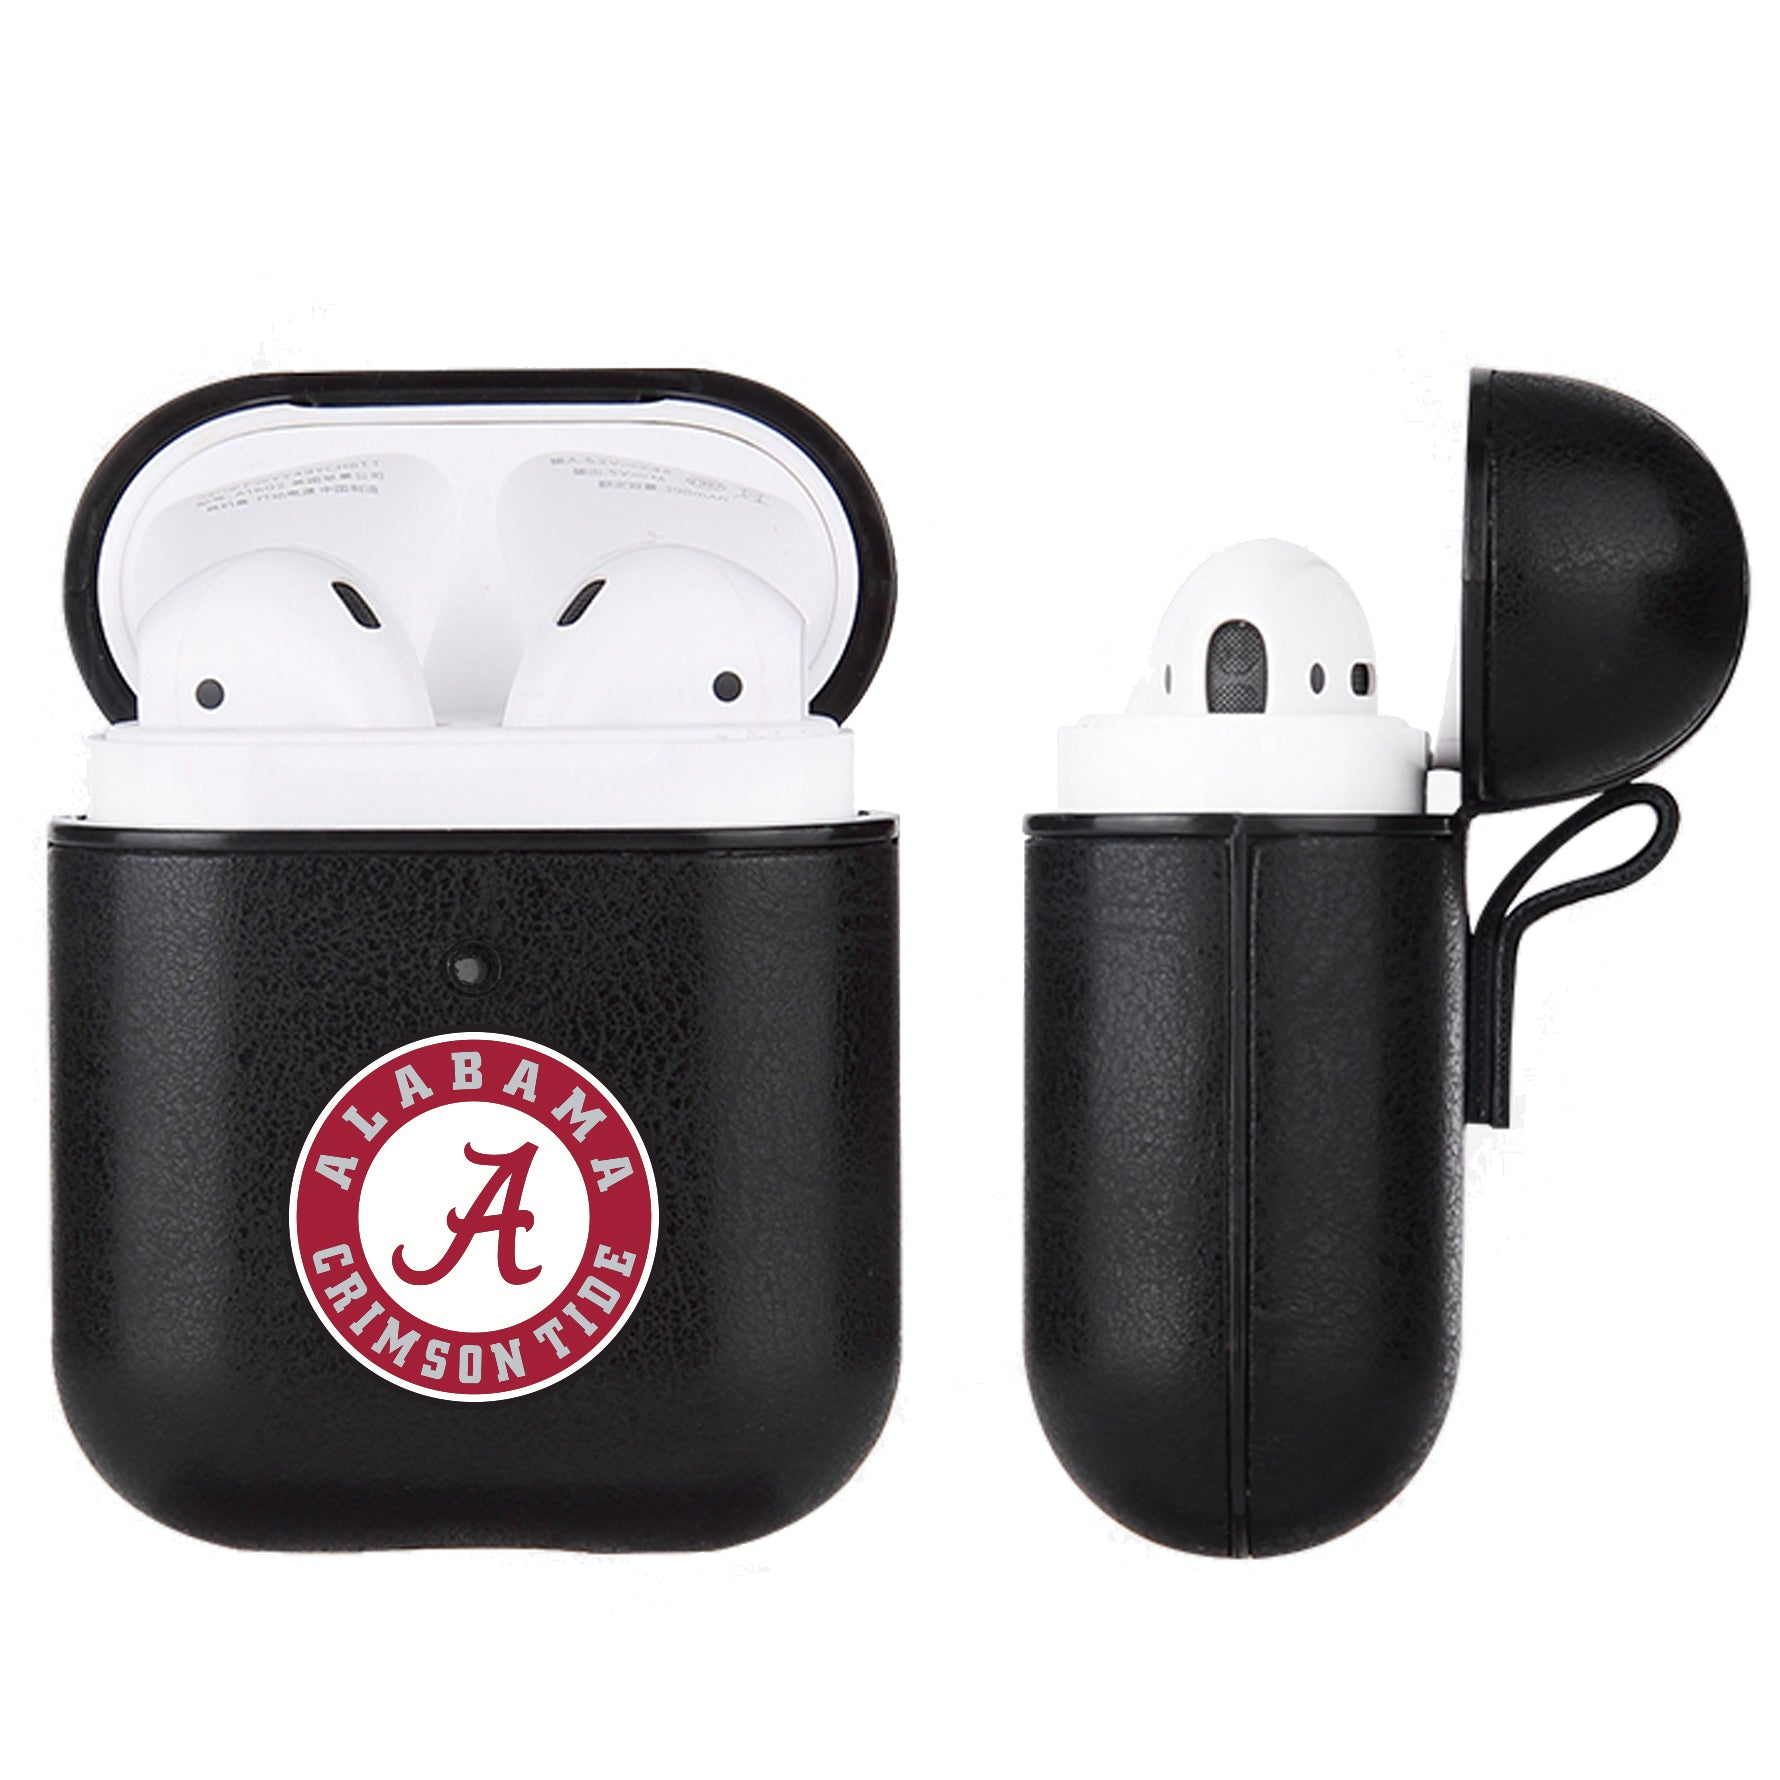 Alabama Crimson Tide Primary Mark design Black Apple Air Pod Leather Case